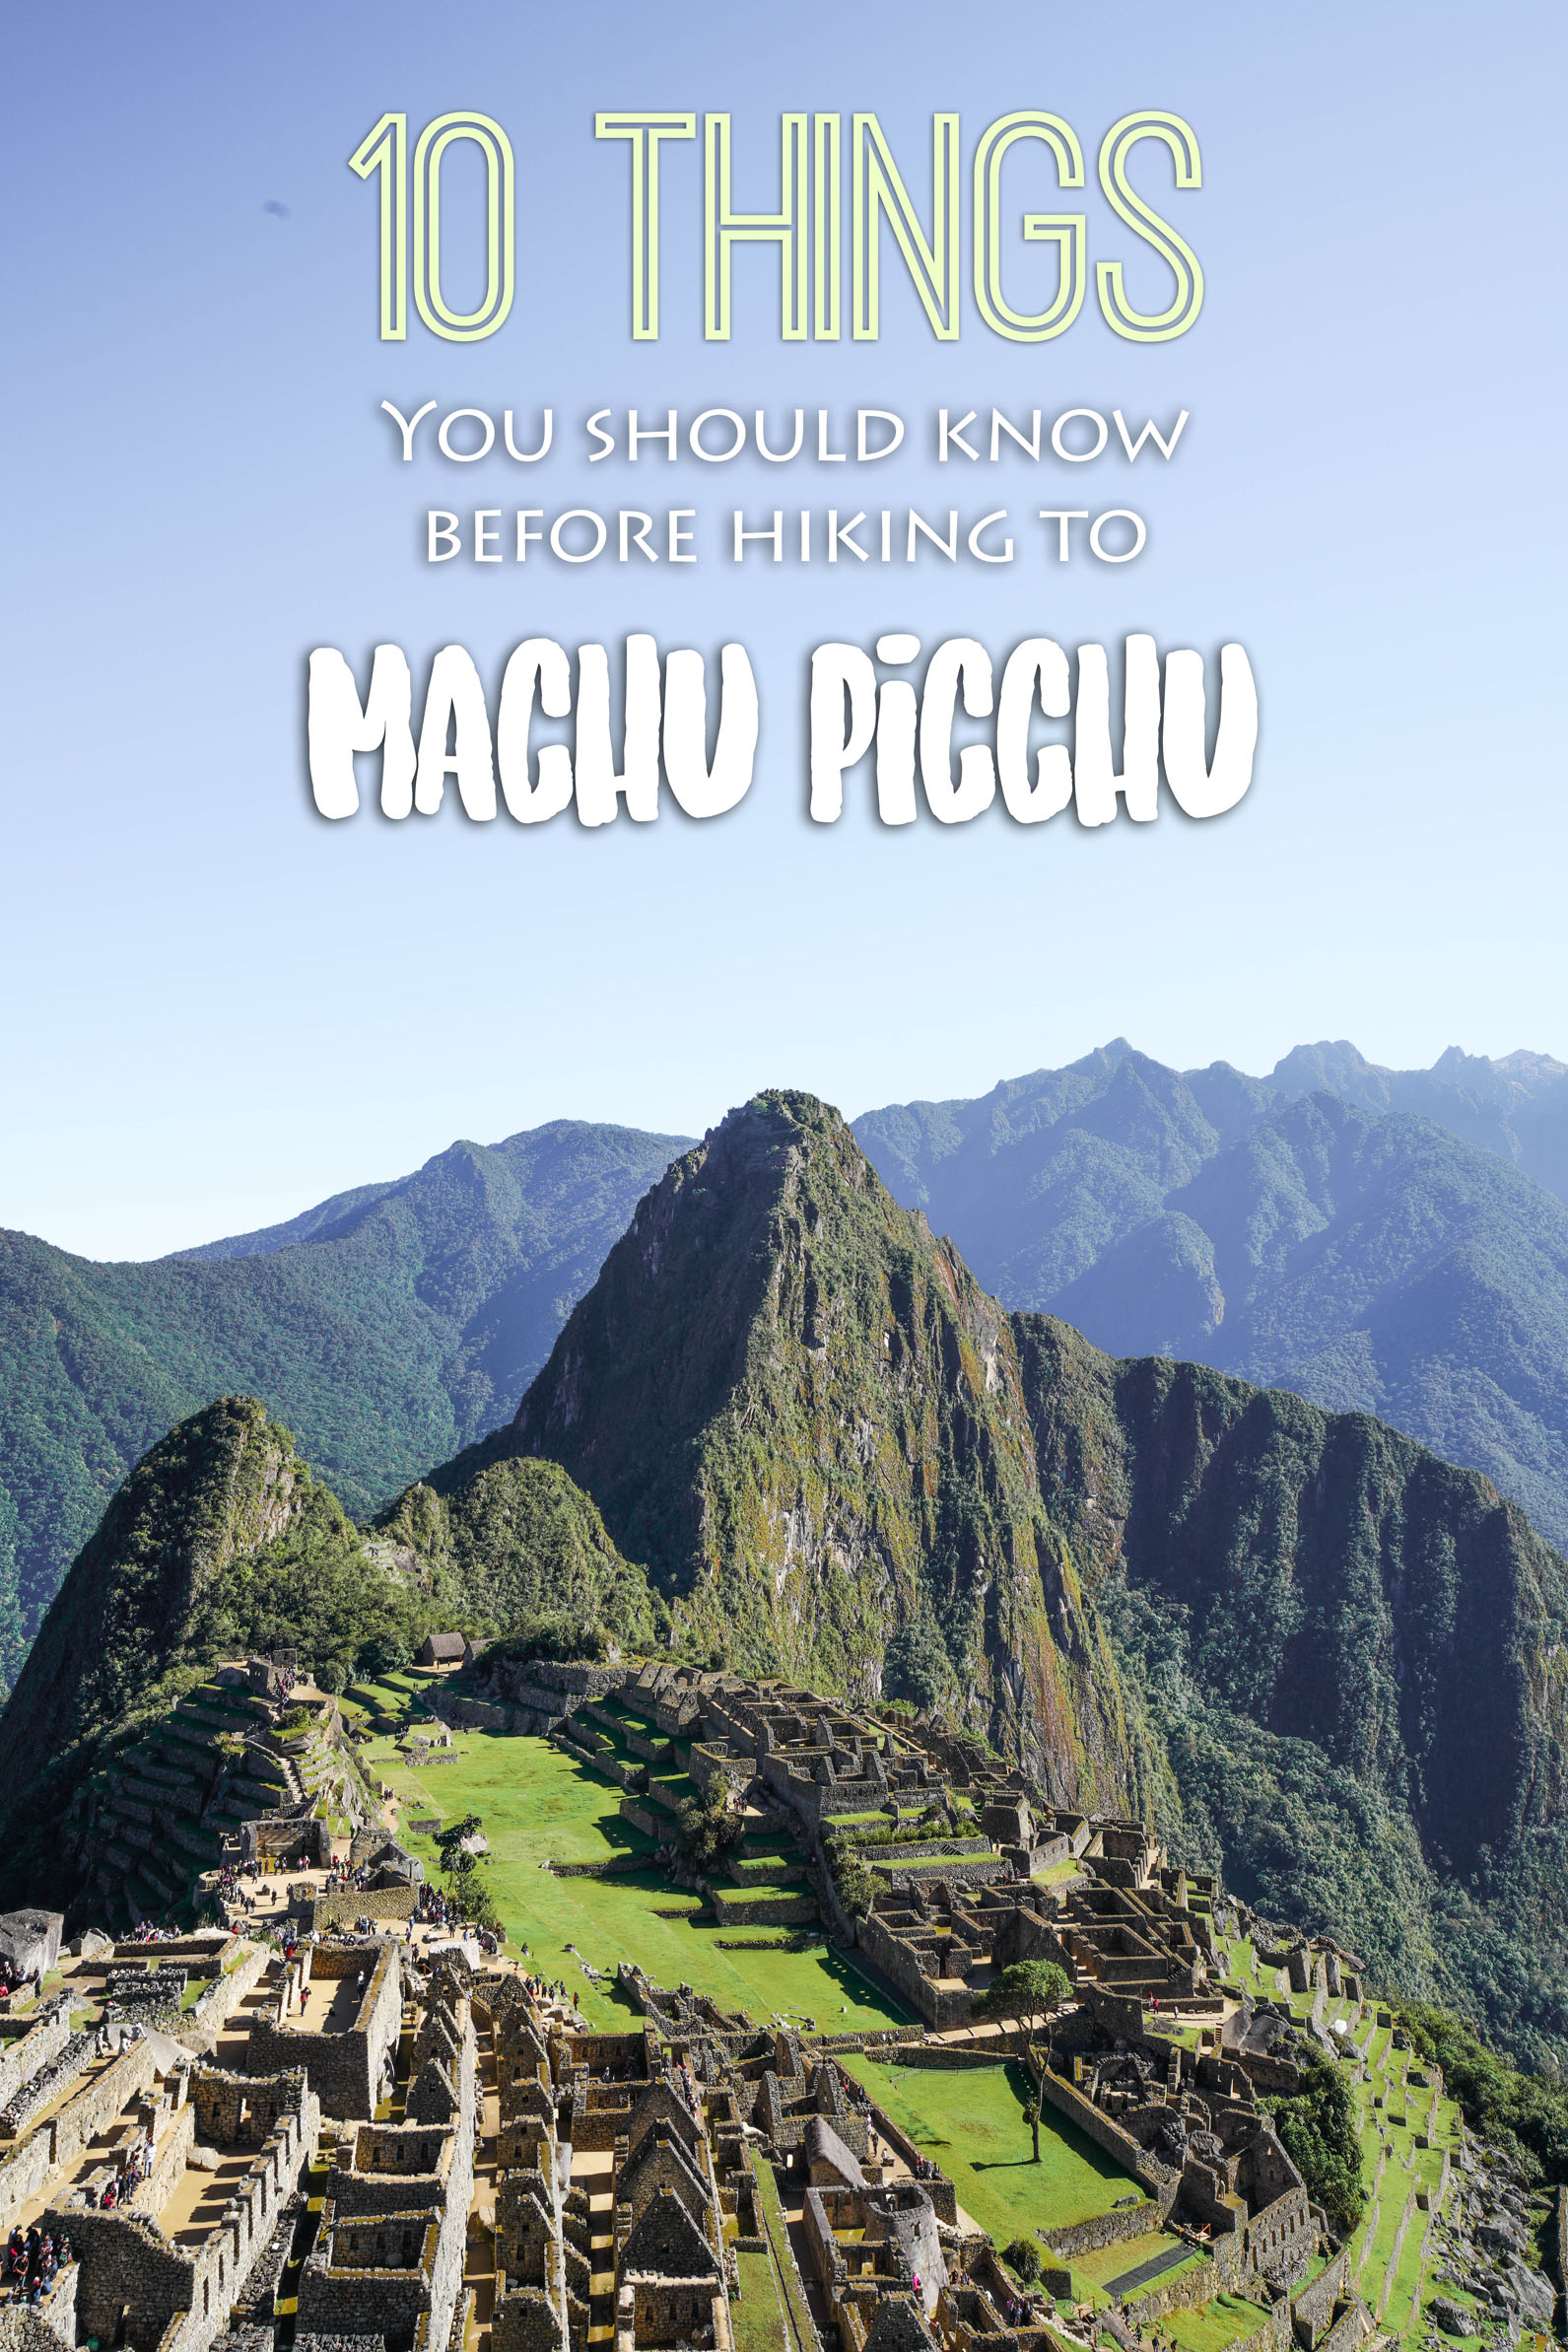 10 things you should know before hiking to Machu Picchu